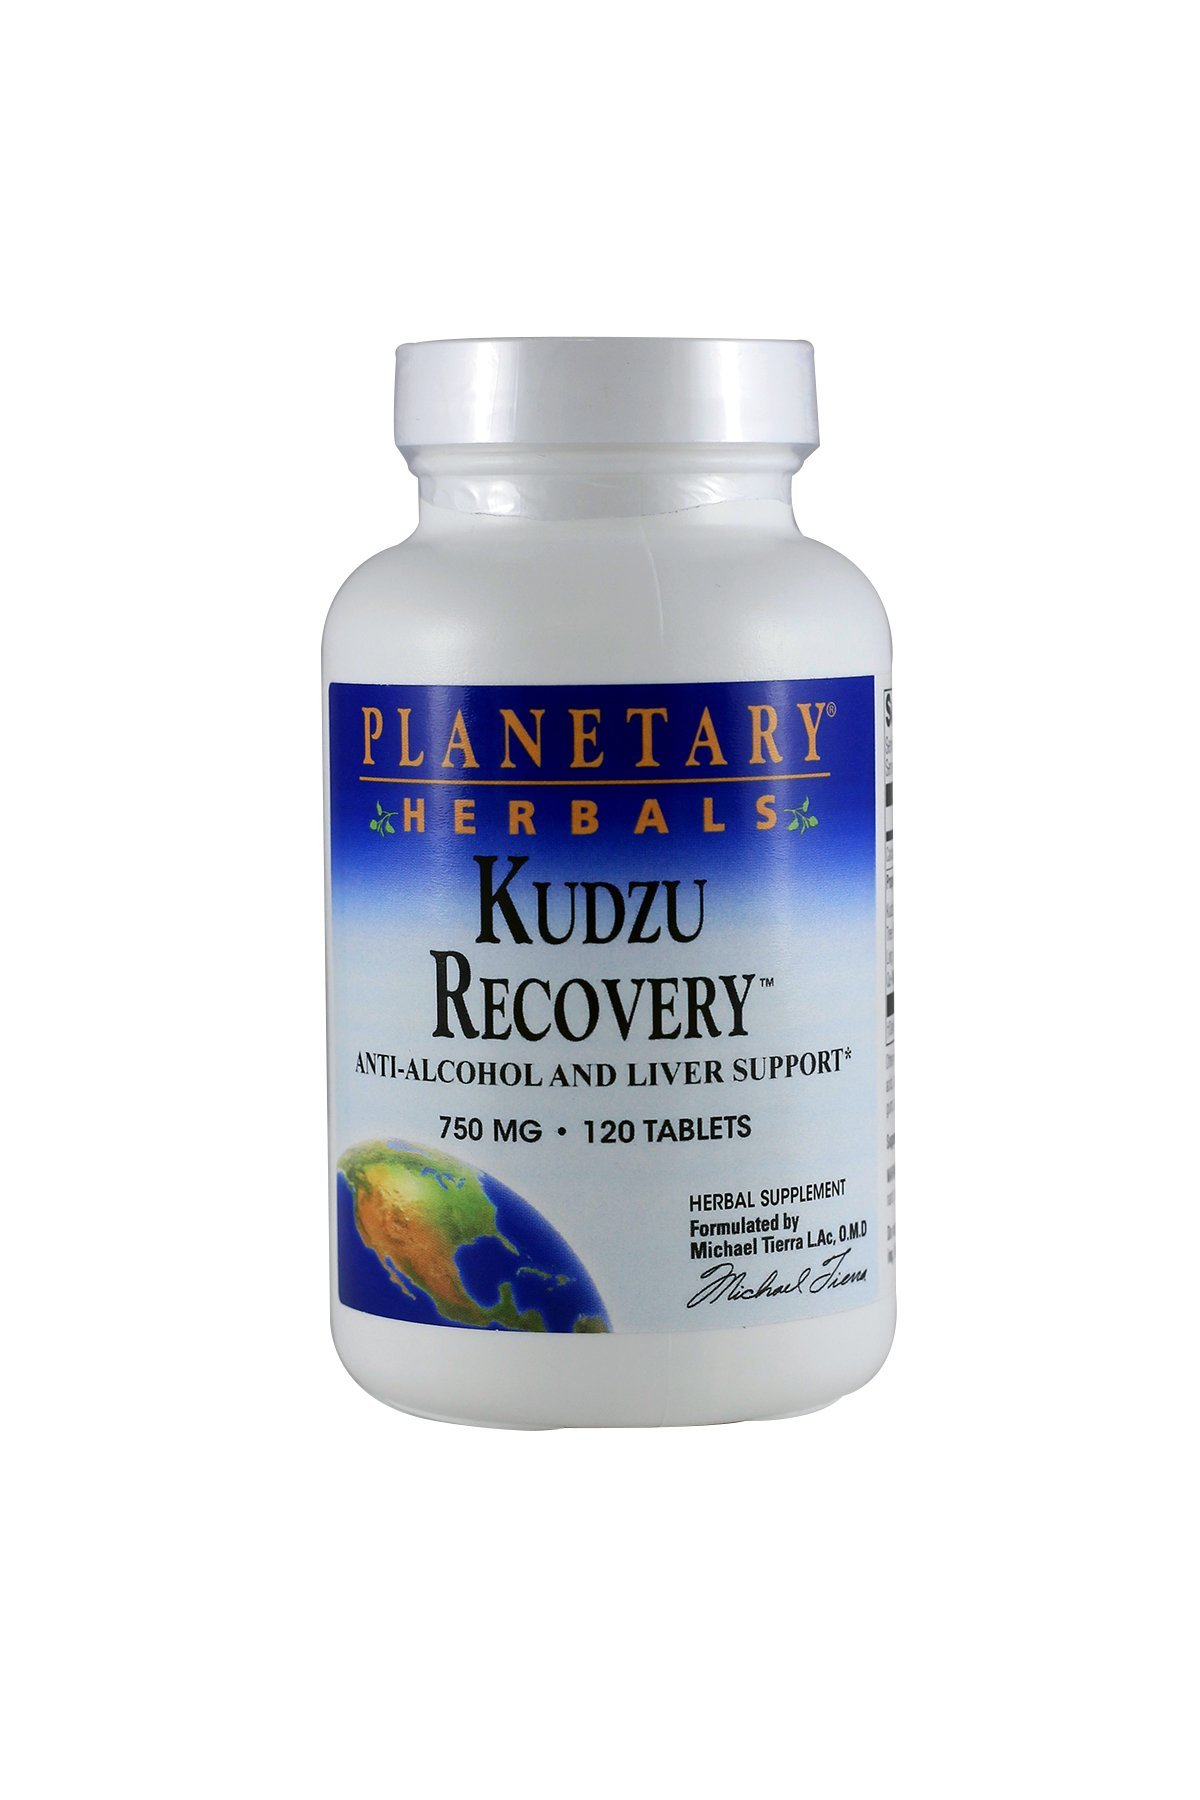 Planetary Herbals Kudzu Recovery 750mg, Anti-Alcohol and Liver Support 120 Tablets